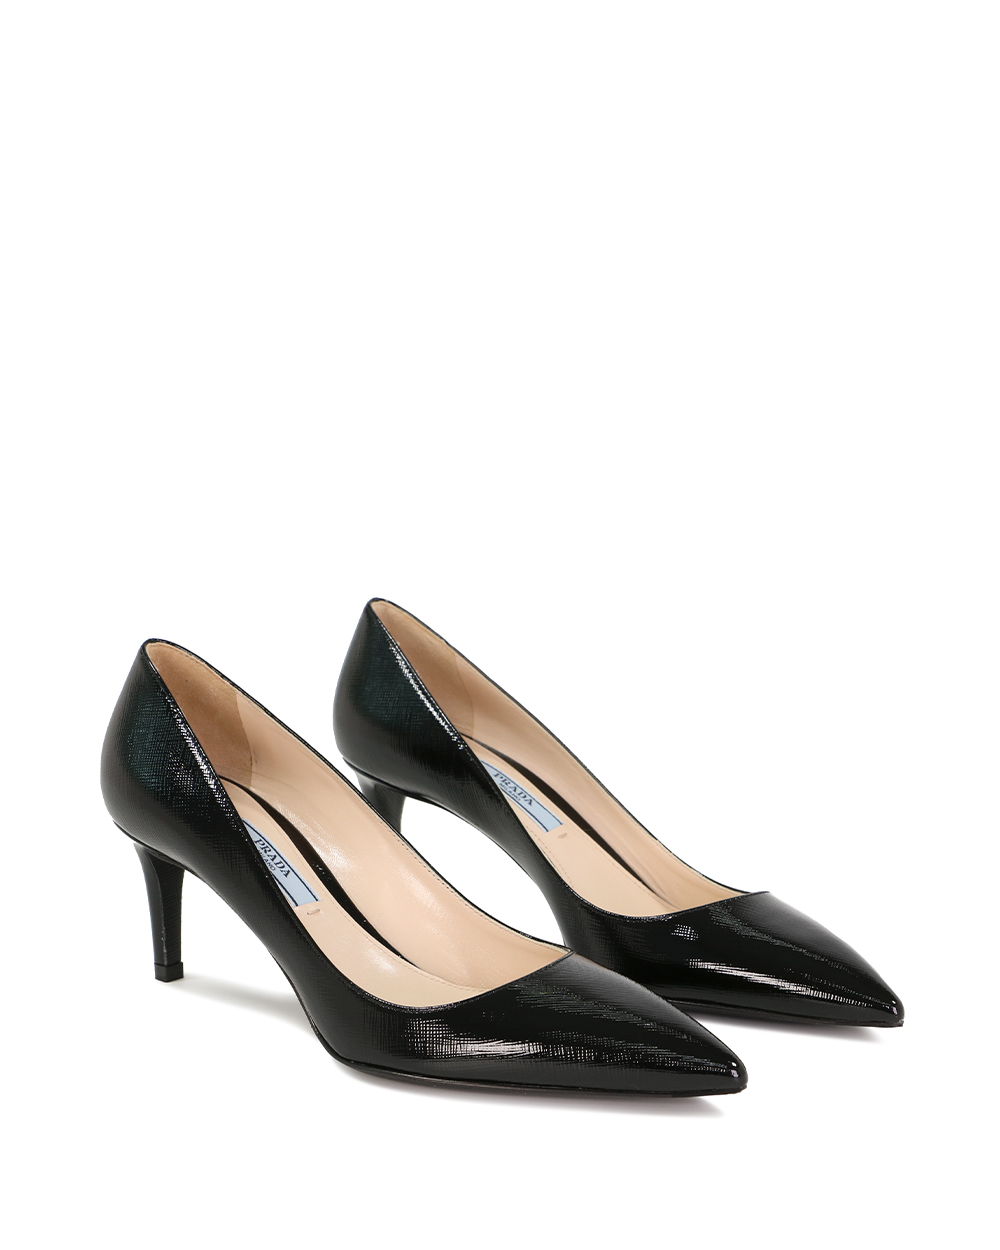 Saffiano Textured Patent Leather Pumps 1